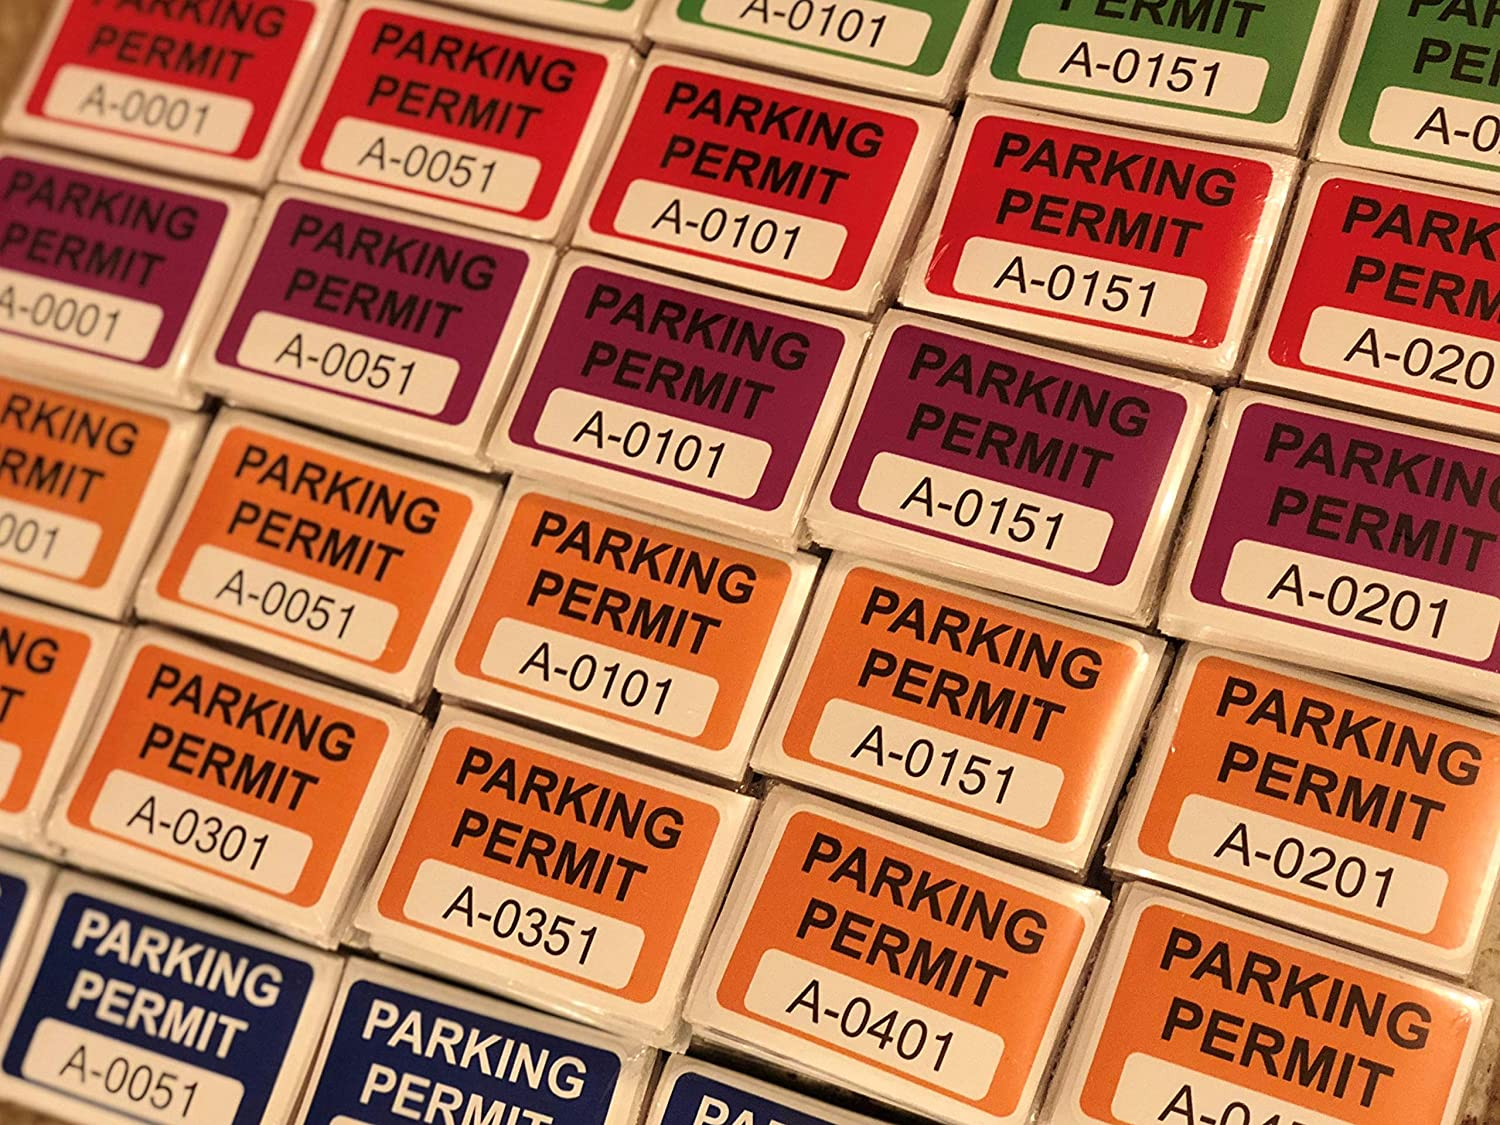 A0051 to A0100 Eichelman Designs Blue Parking Permit Window Stickers Decals Multiple Number Sets Available